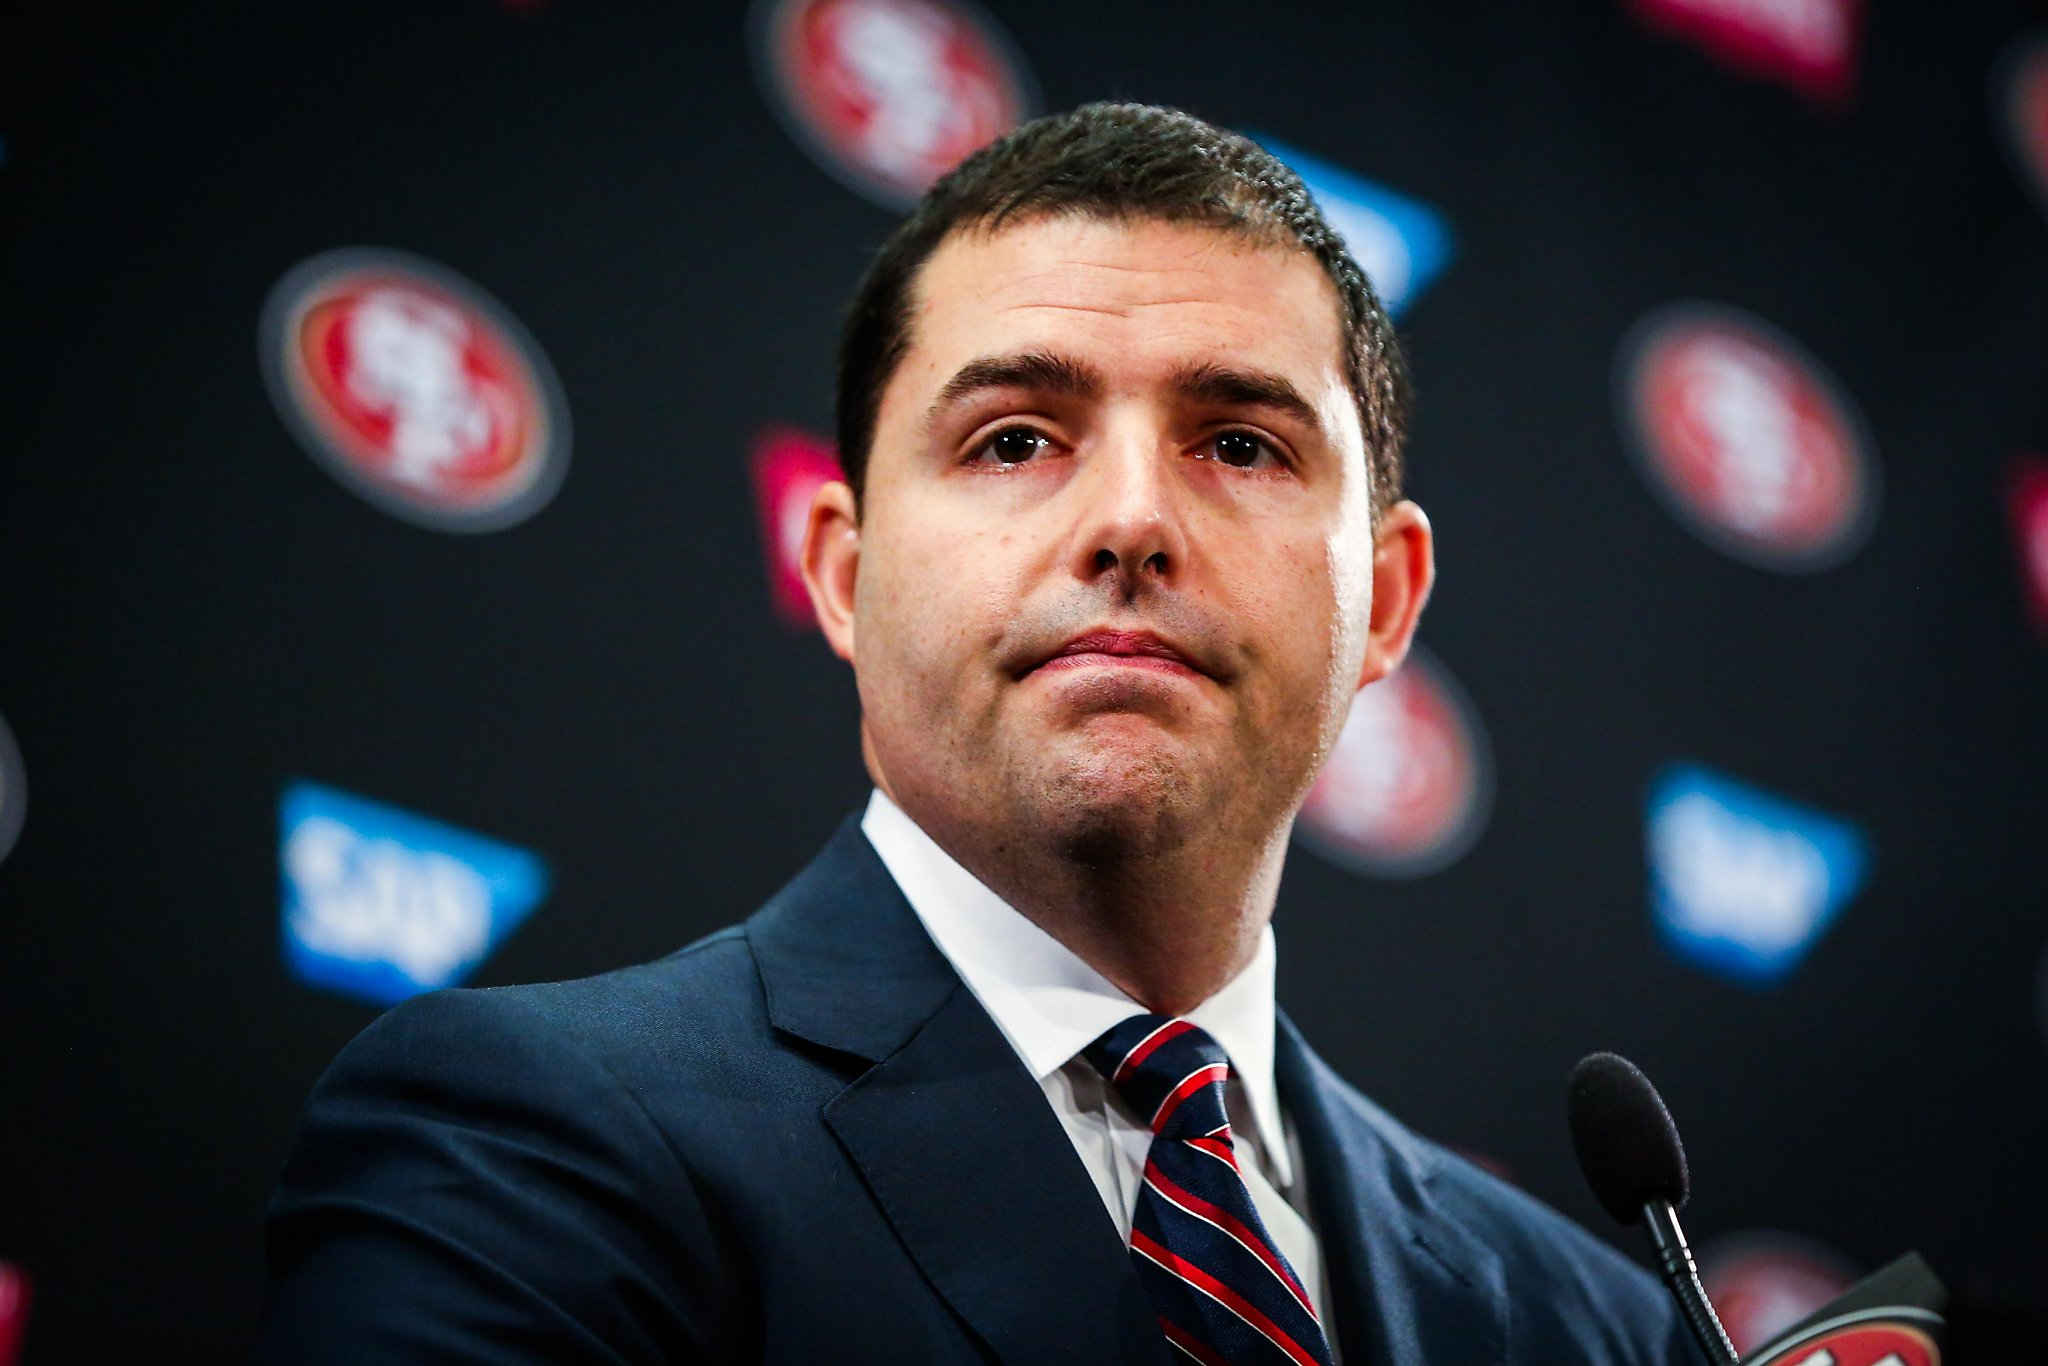 ers fallout jed york says more of the same san francisco 49ers fallout jed york says more of the same san francisco chronicle